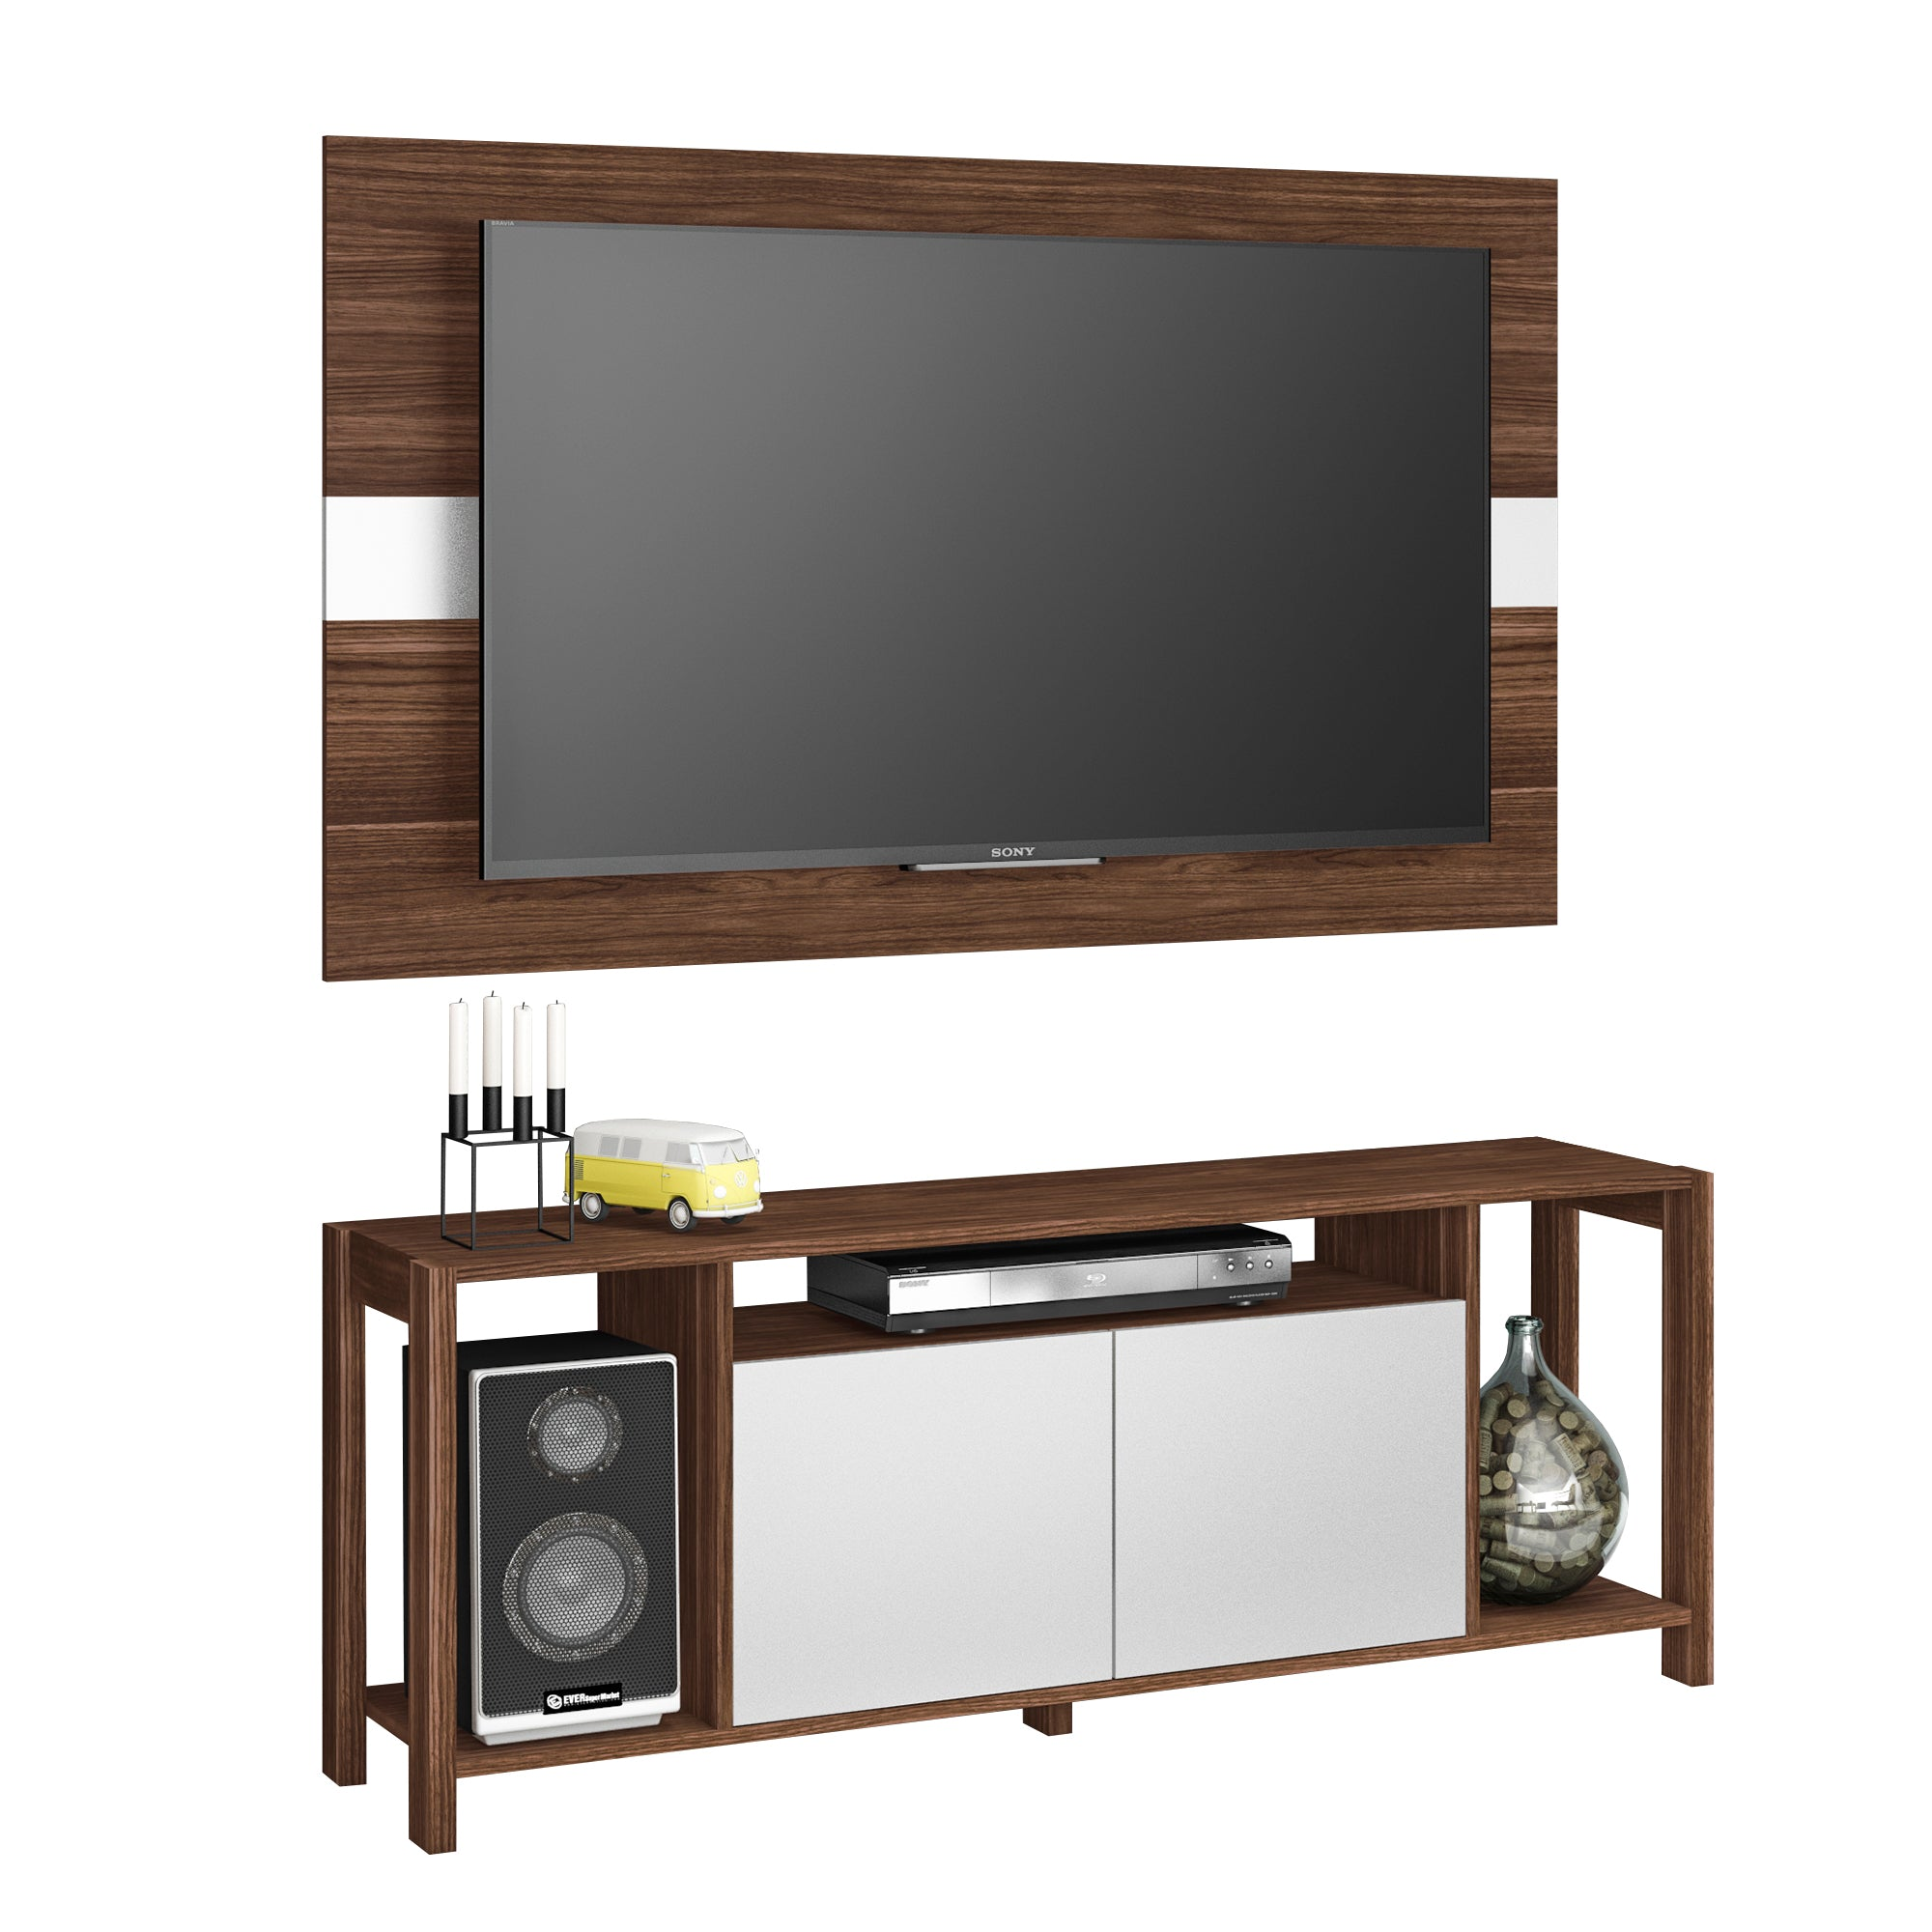 Mueble Combo Panel y Rack p/ TV 55' Nogal/Blanco AZ1017.0001 - Apartamento22